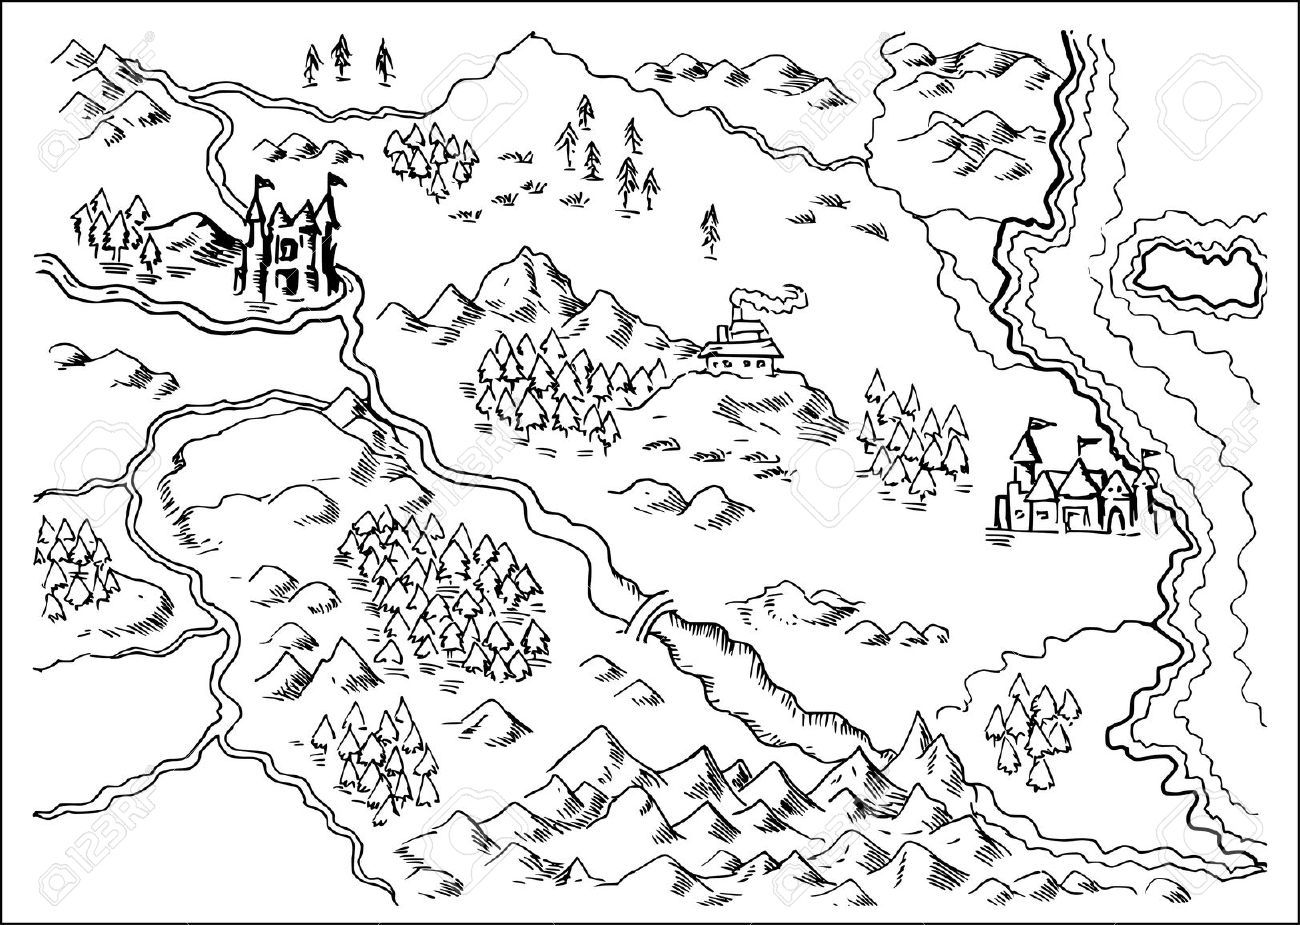 Line Art Map : Mountains maps sketch szukaj w google sketchnoting